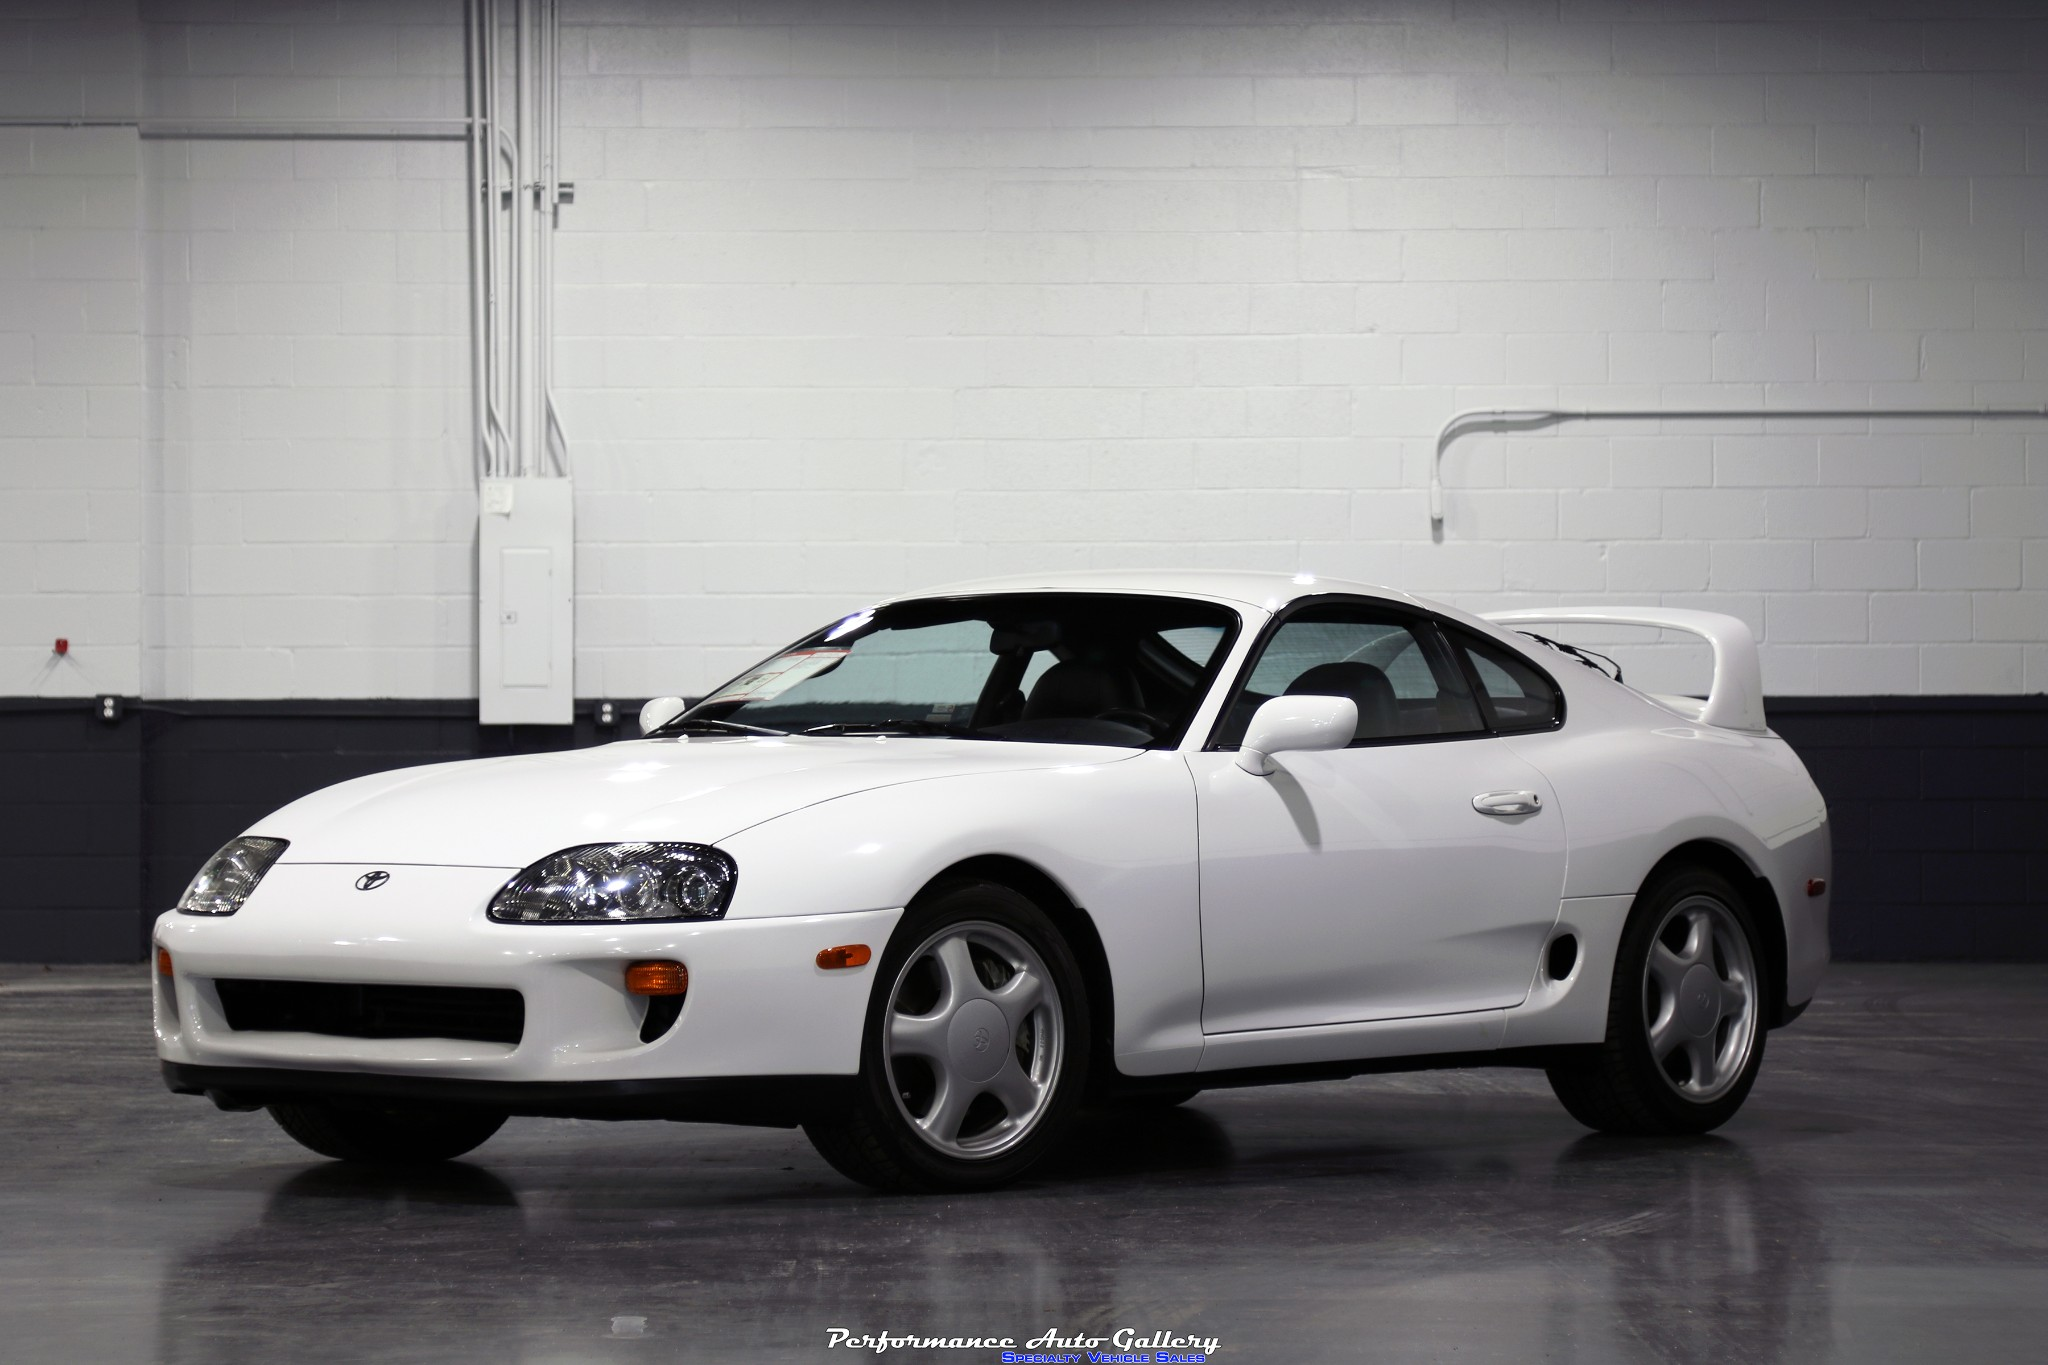 sale listed supra for news toyota hp from on ebay